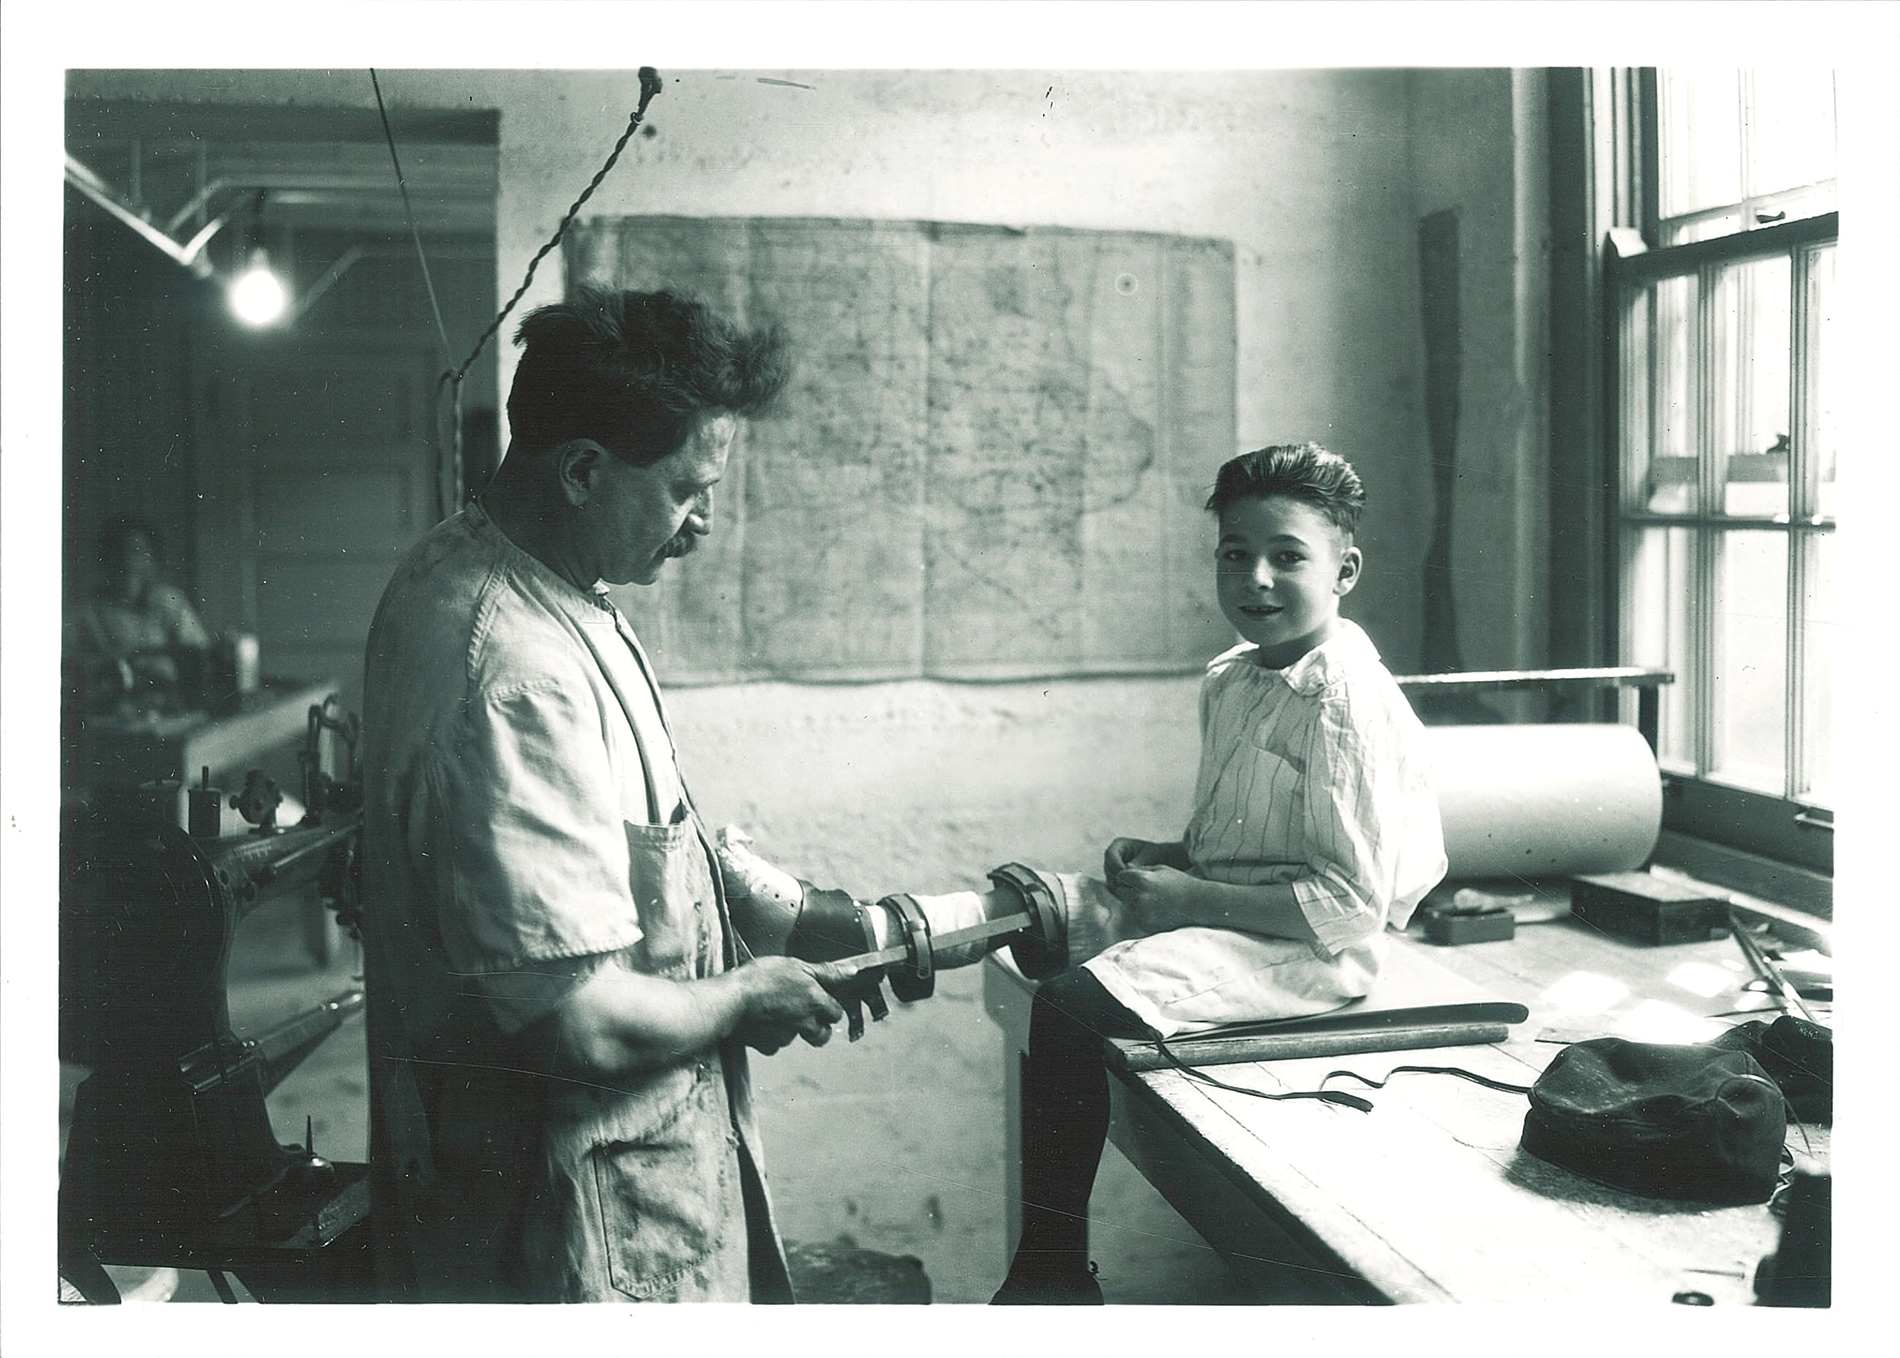 P.G. Mott constructs a brace for a child in the Children's Hospital brace shop, May 1920